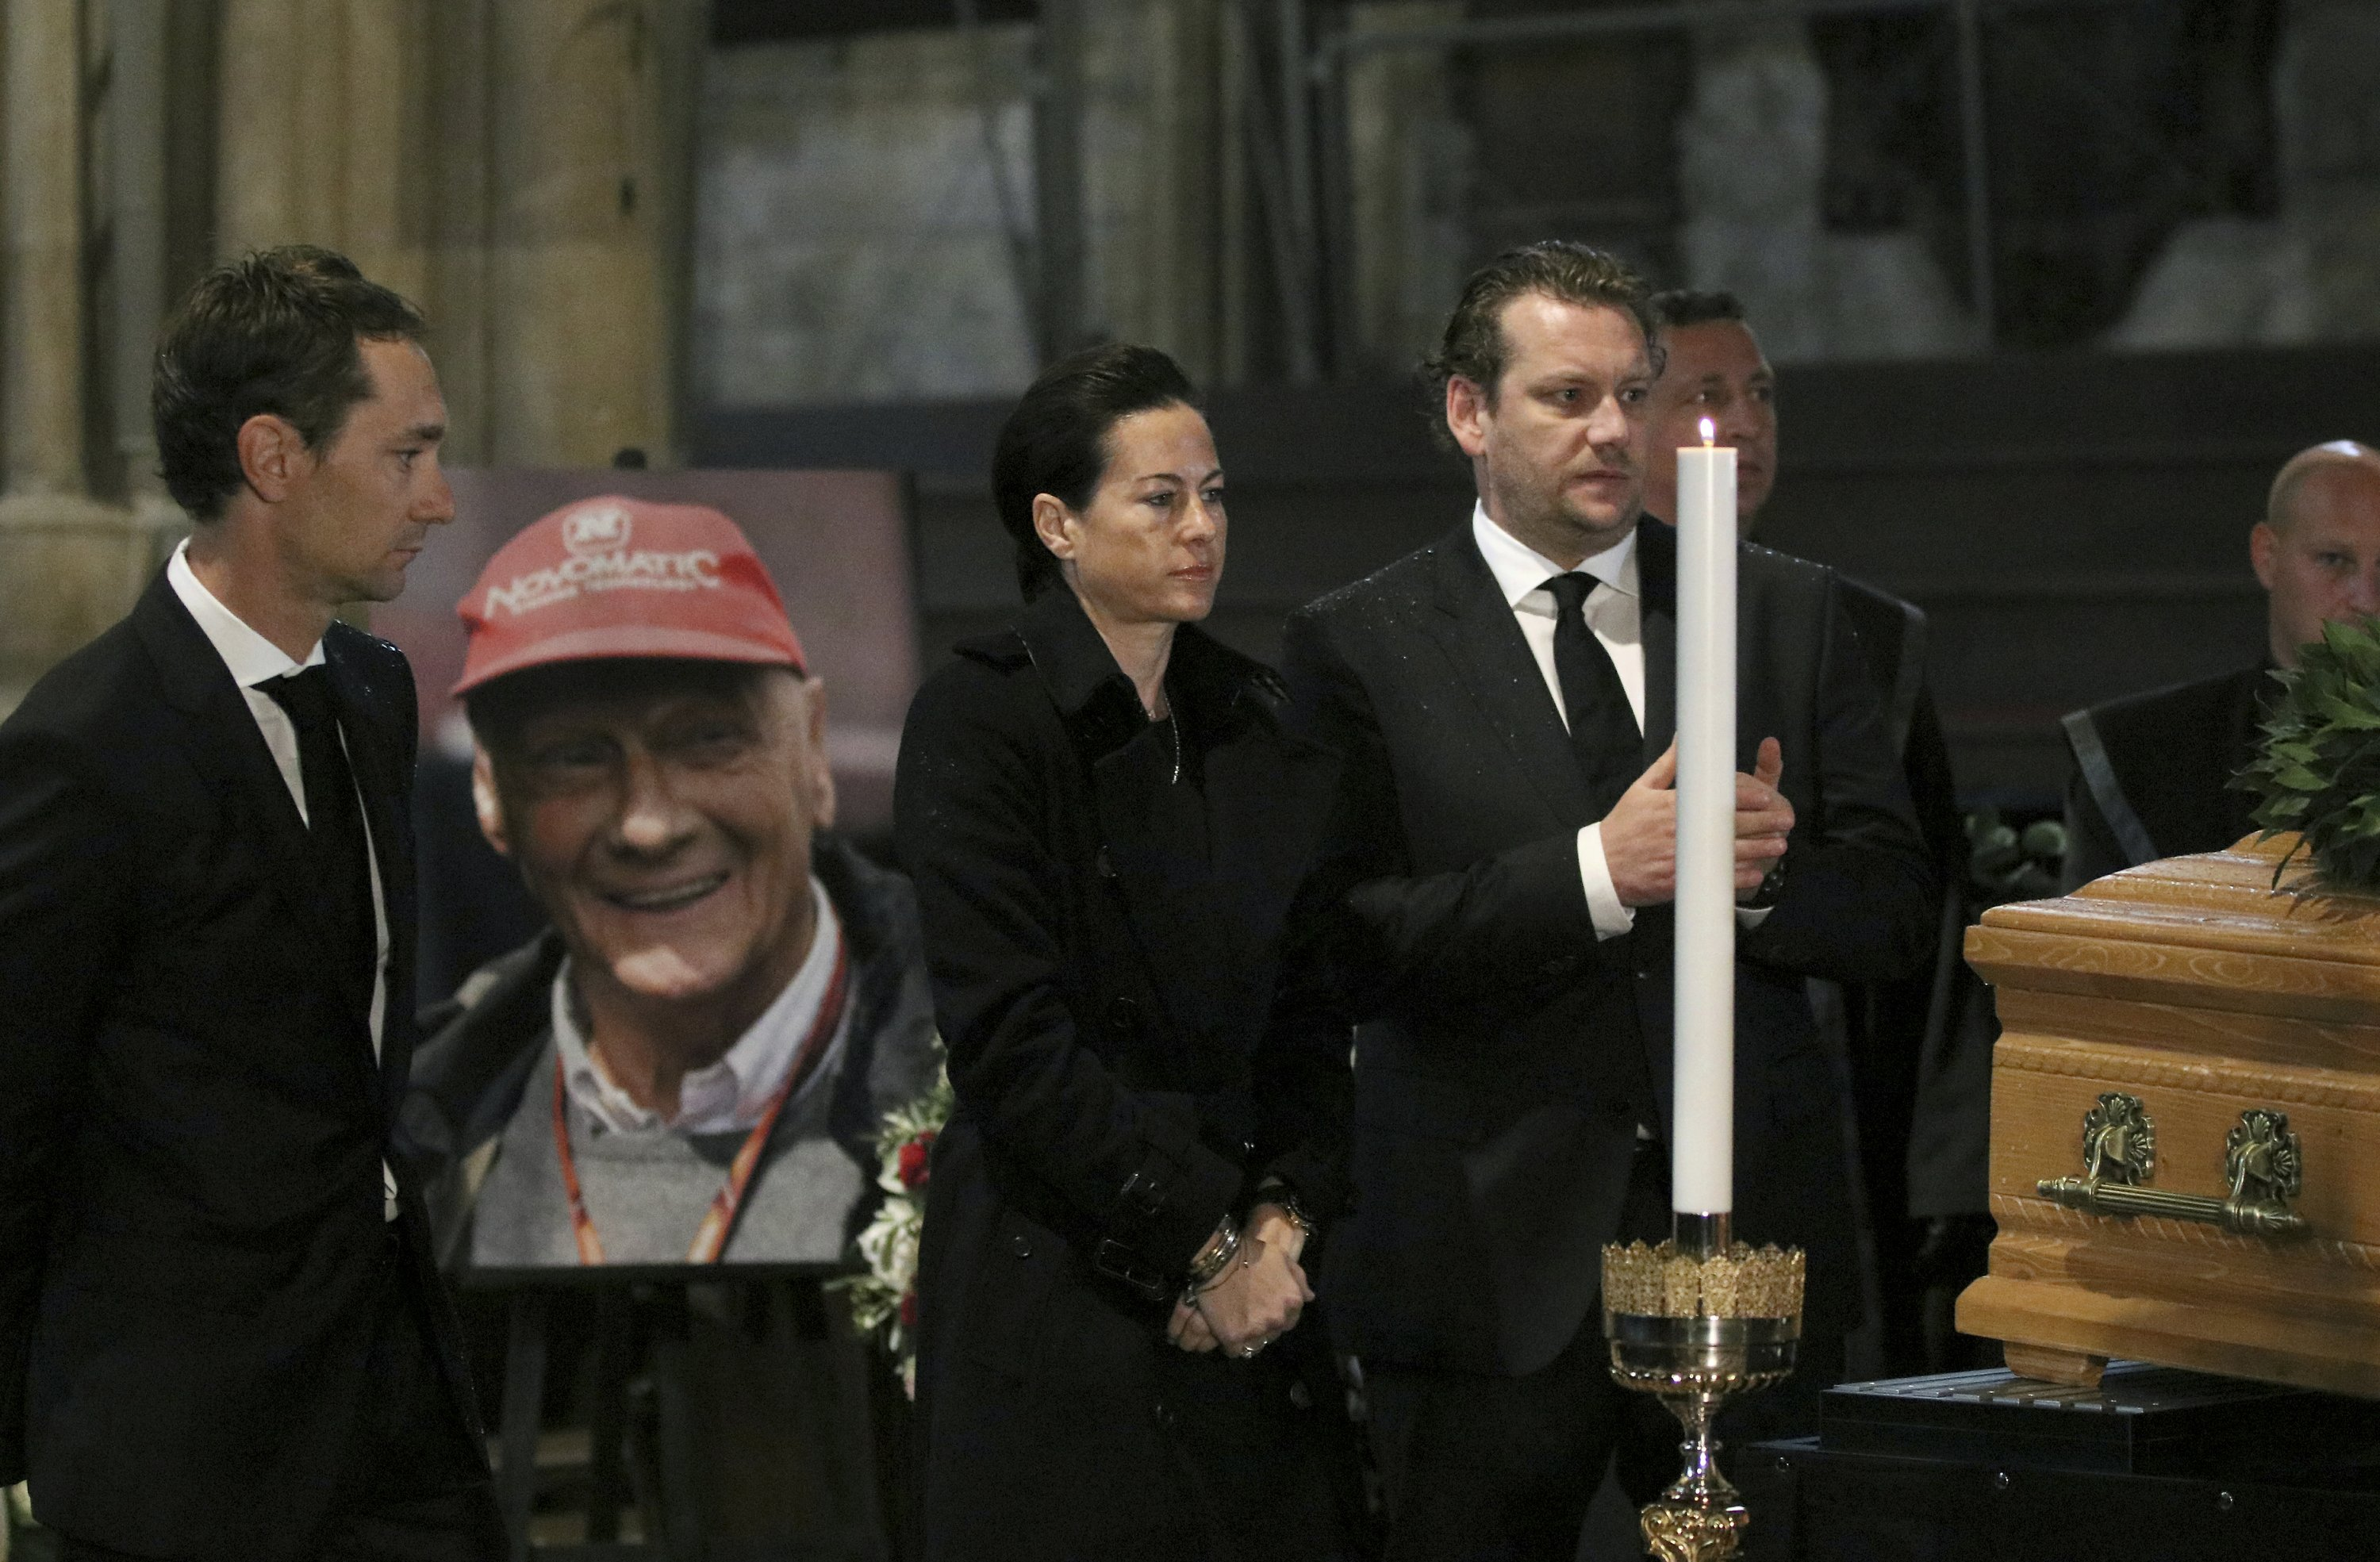 Family, fans to attend requiem for F1 great Niki Lauda